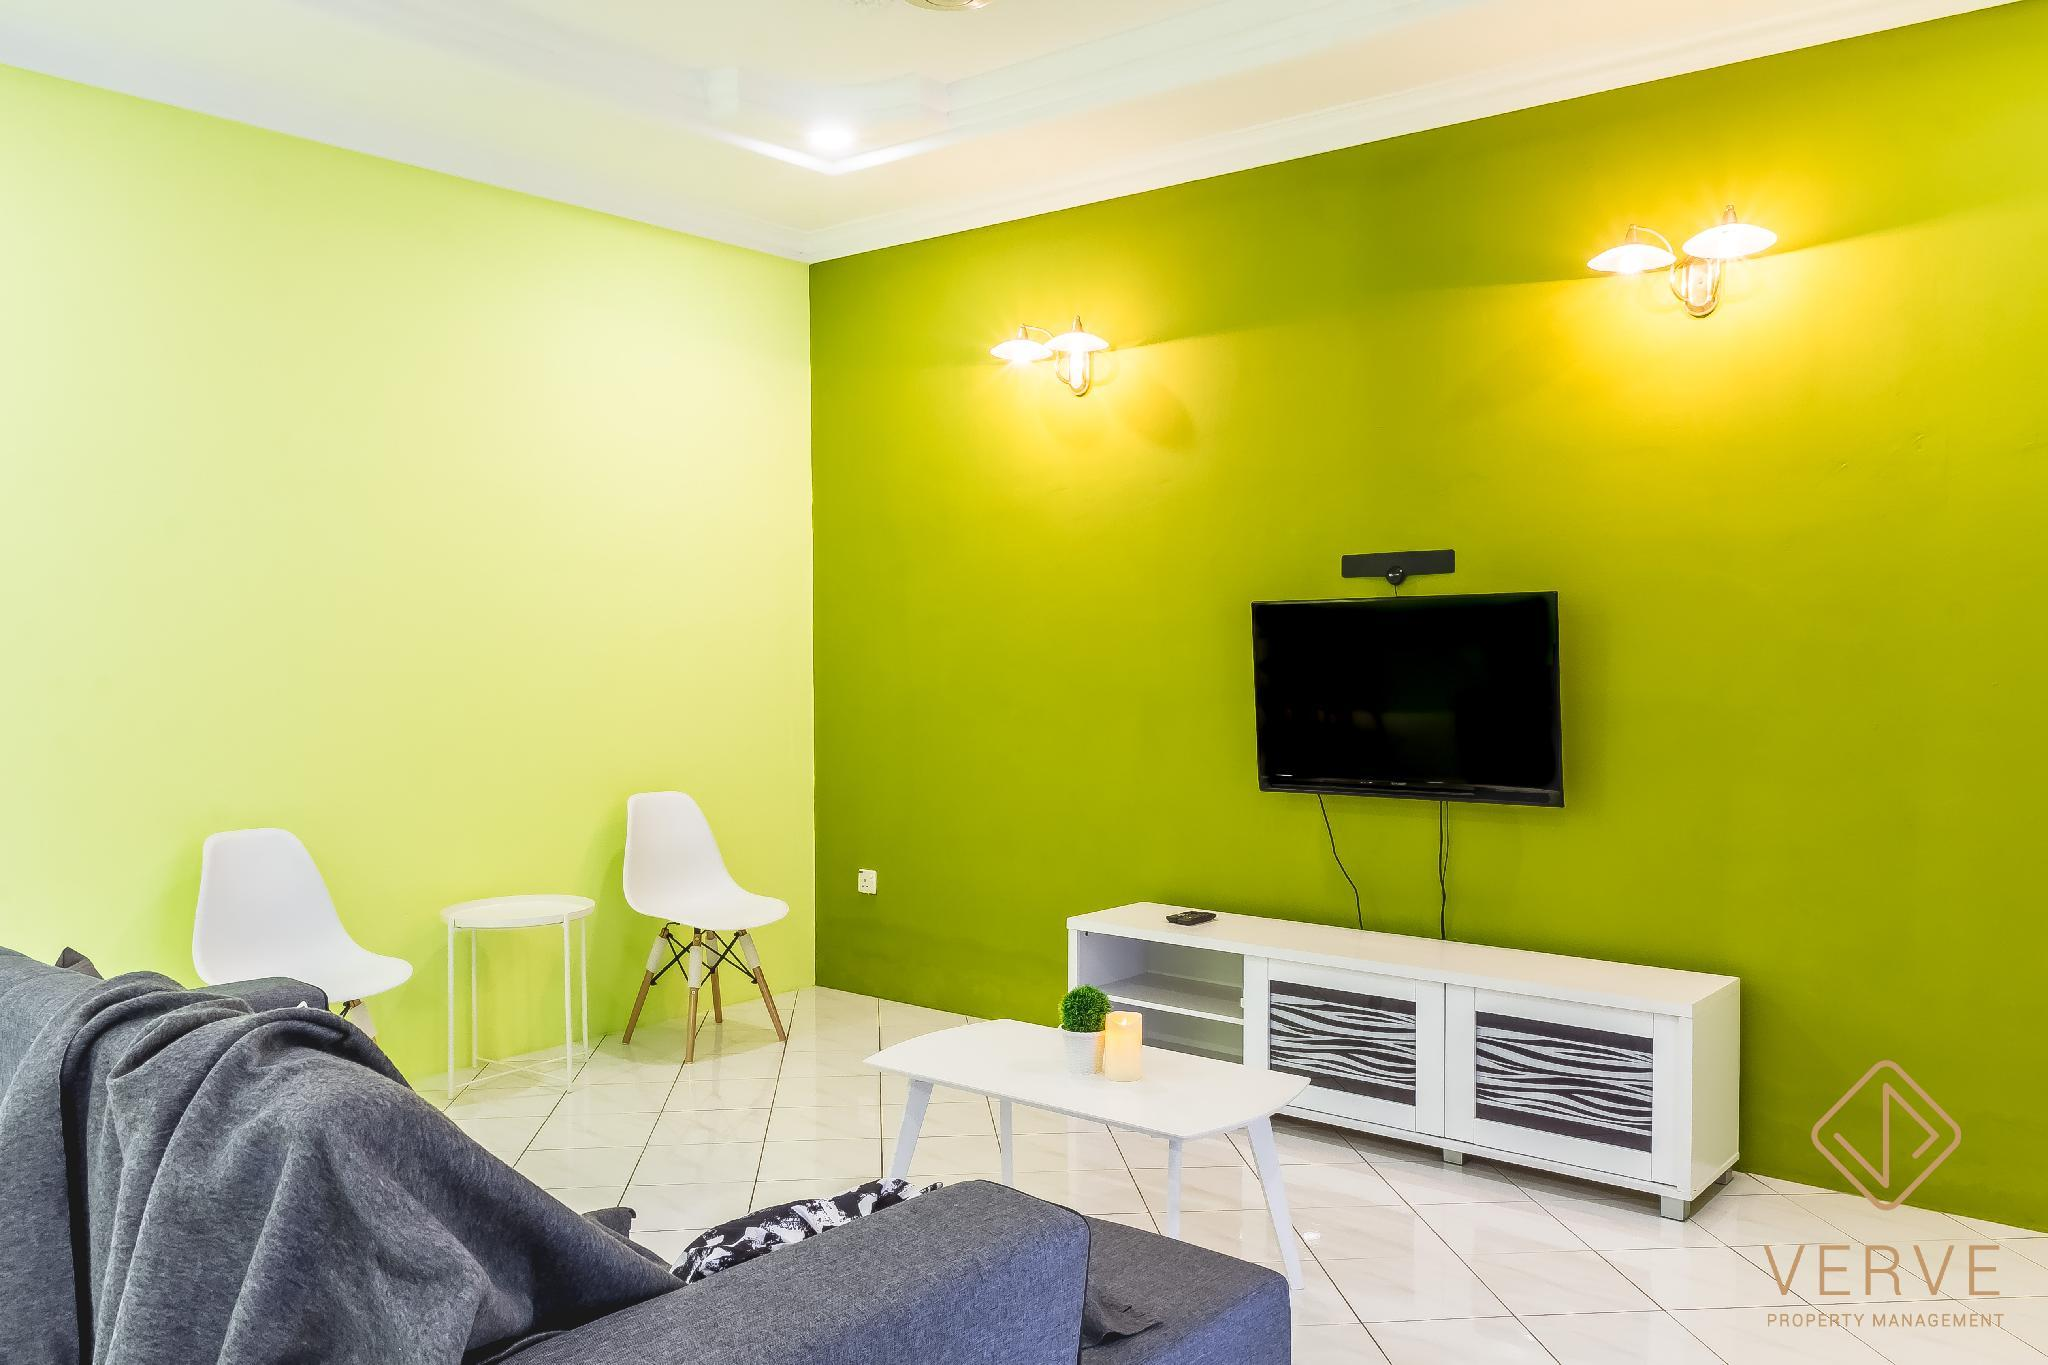 Ipoh Valley Concept Home By Verve  16 Pax  EECH34